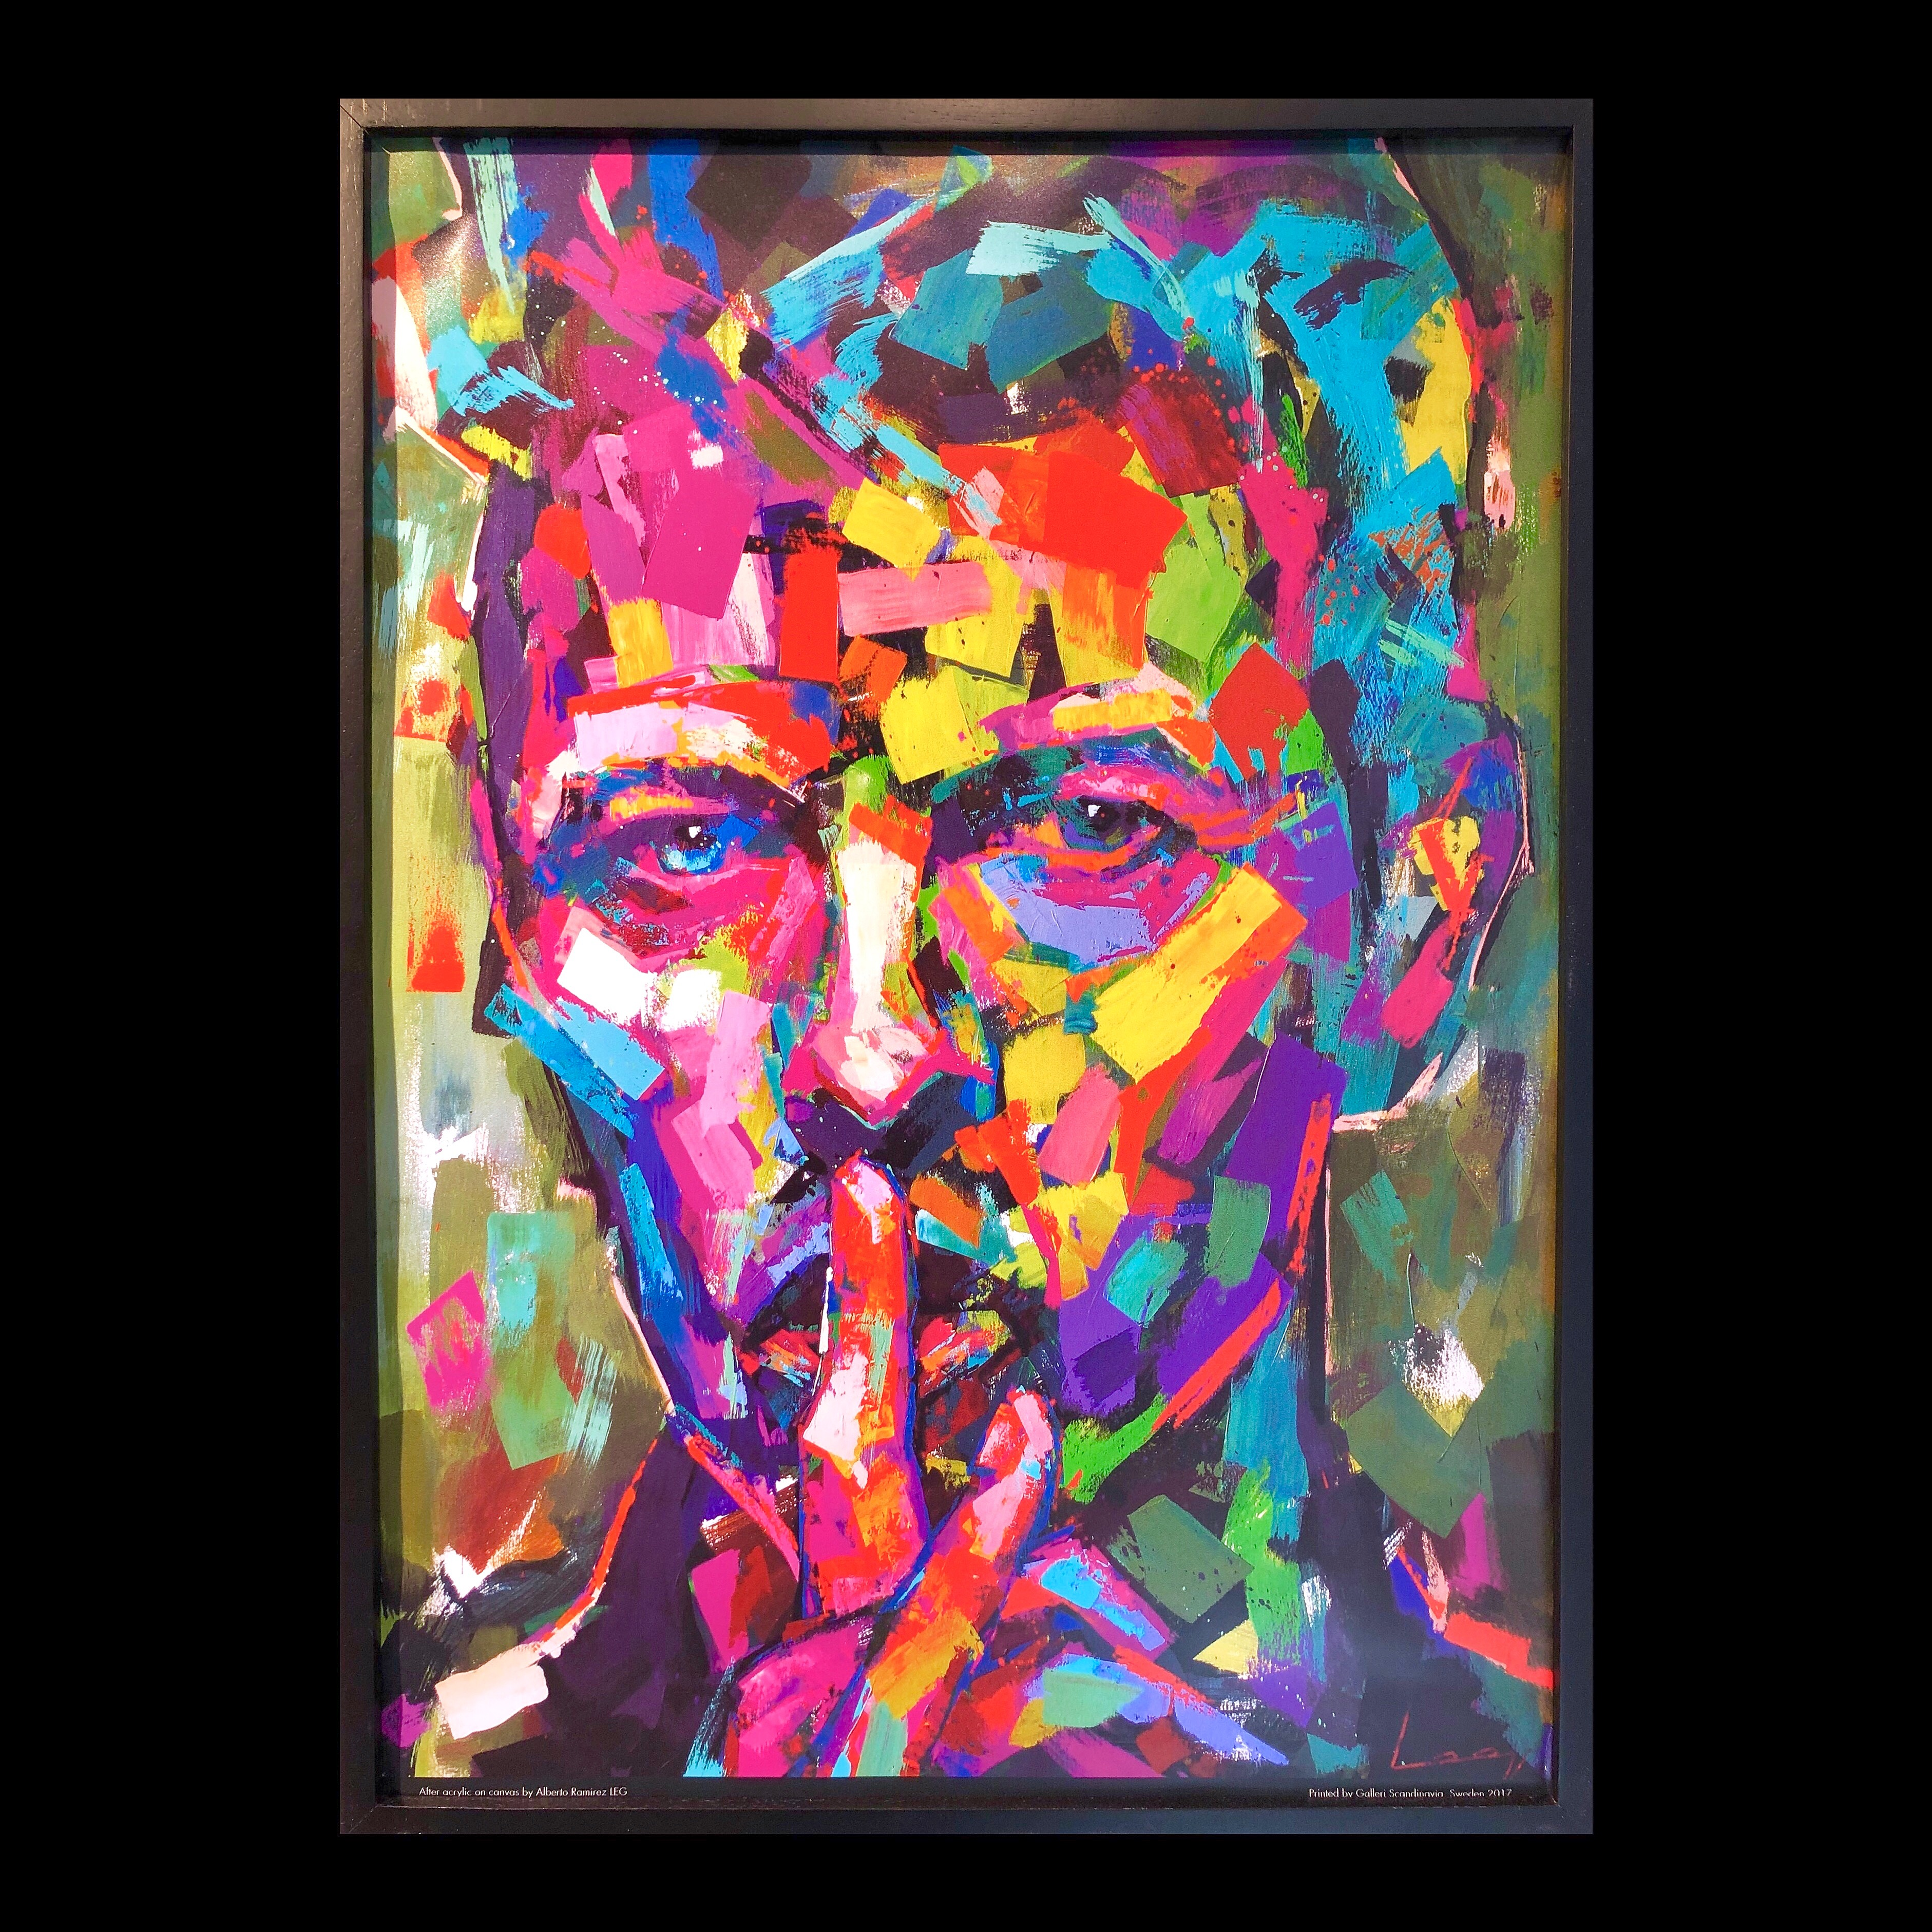 """David Bowie"" Limited Edition Poster by LEG 50x70 cm"